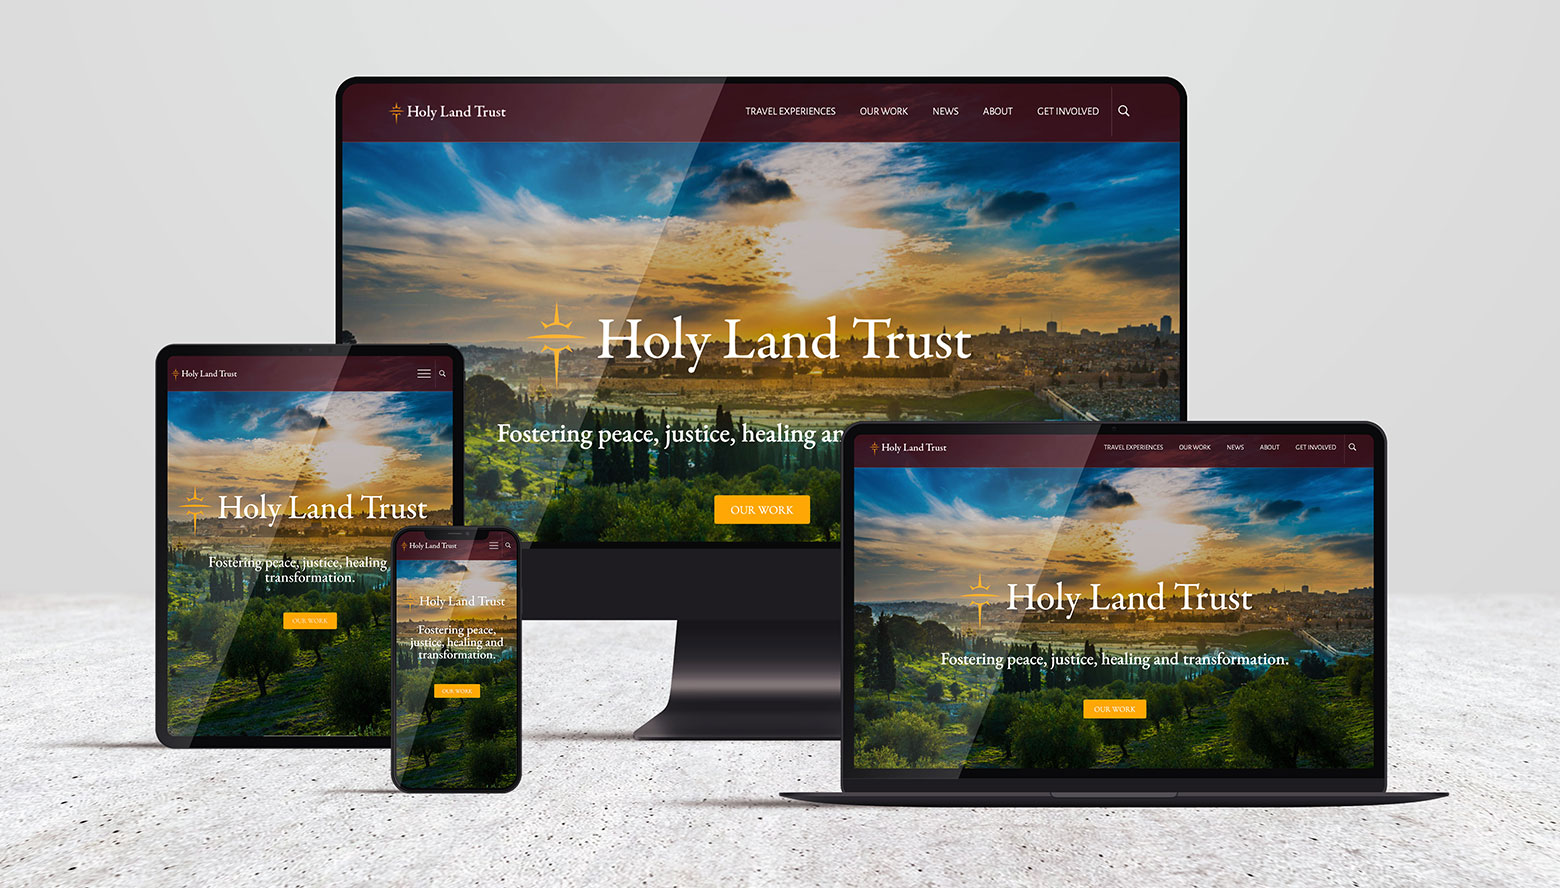 Holy Land Trust brand and marketing case study by Bryt•Idea Consulting